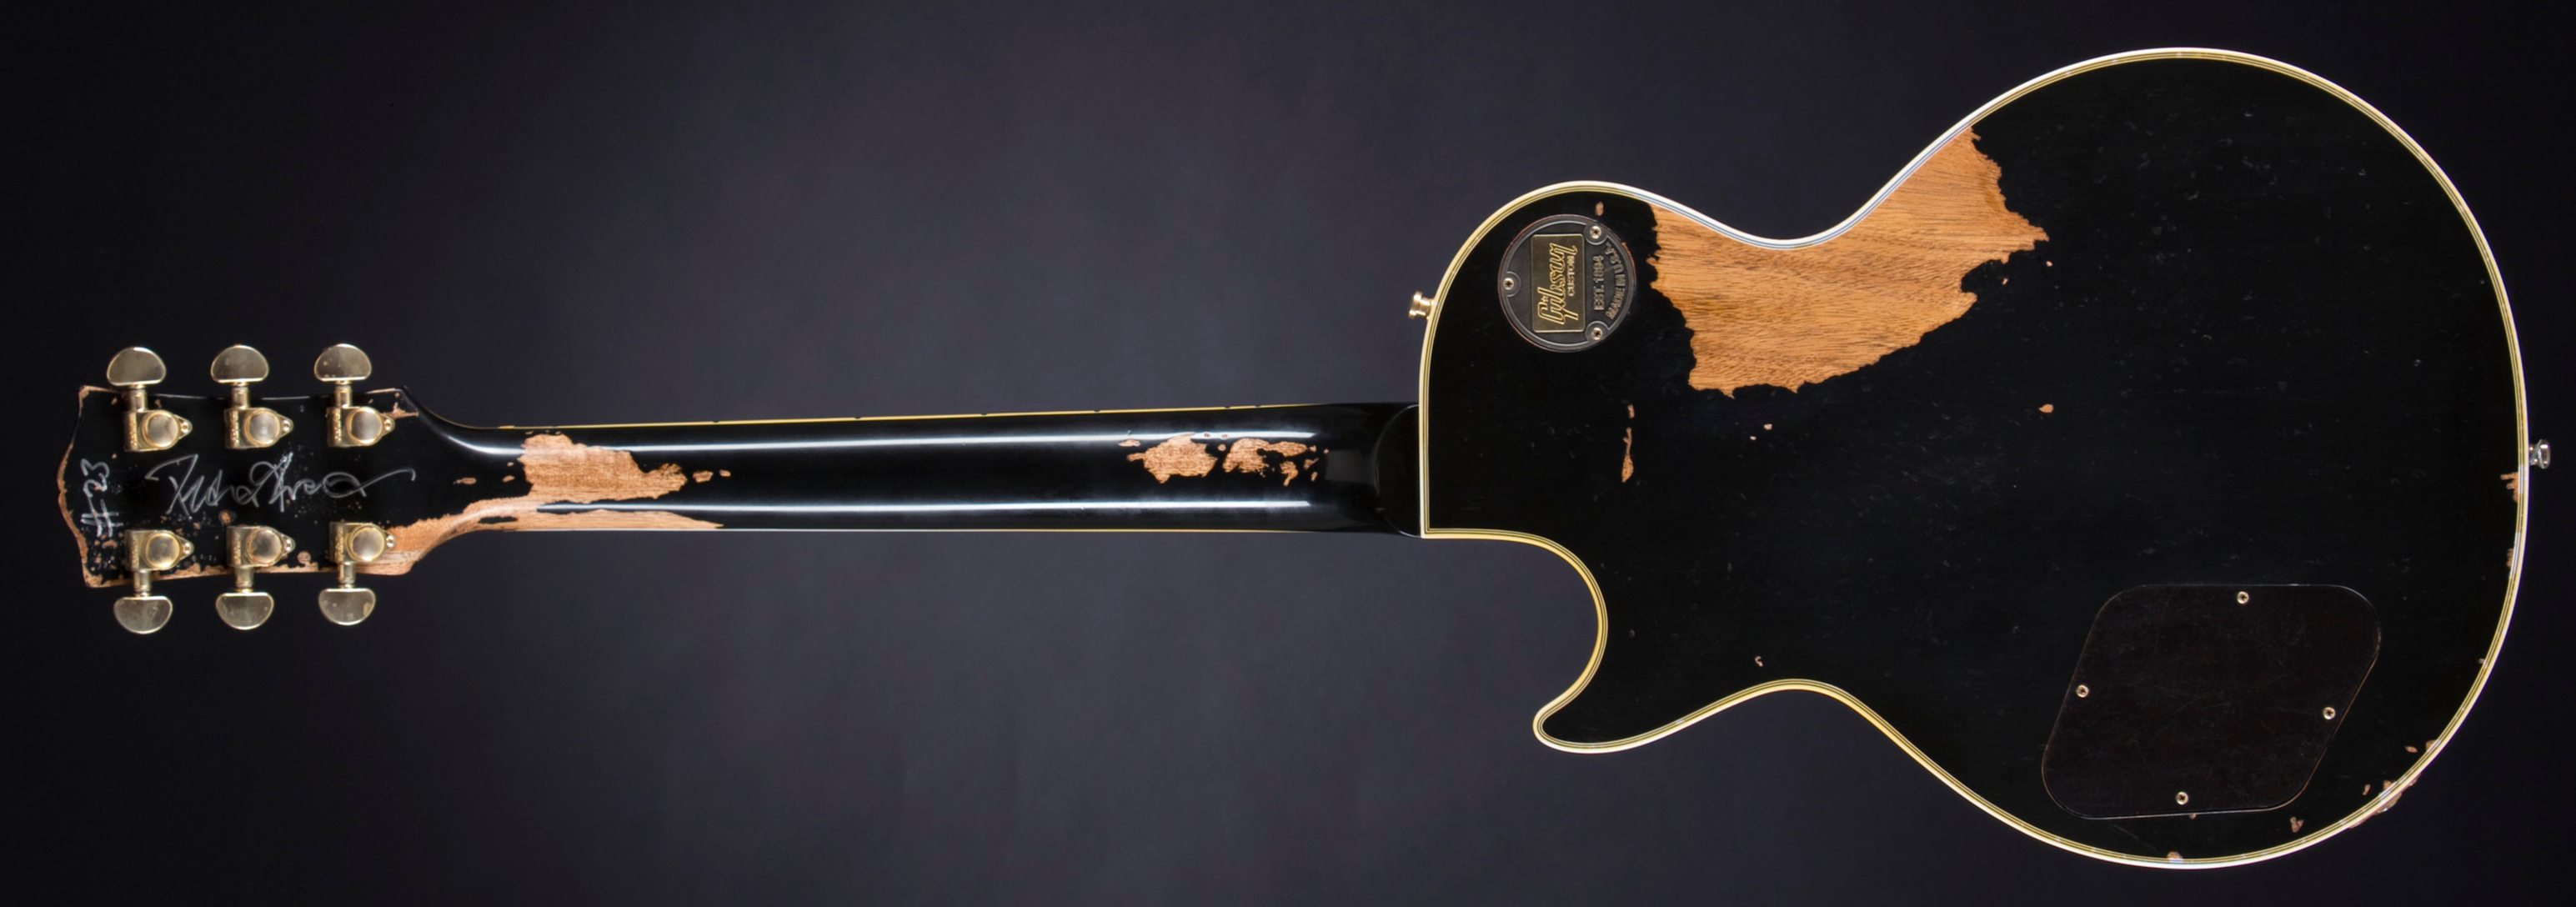 "GIBSON Peter Frampton ""Phenix"" Rear"